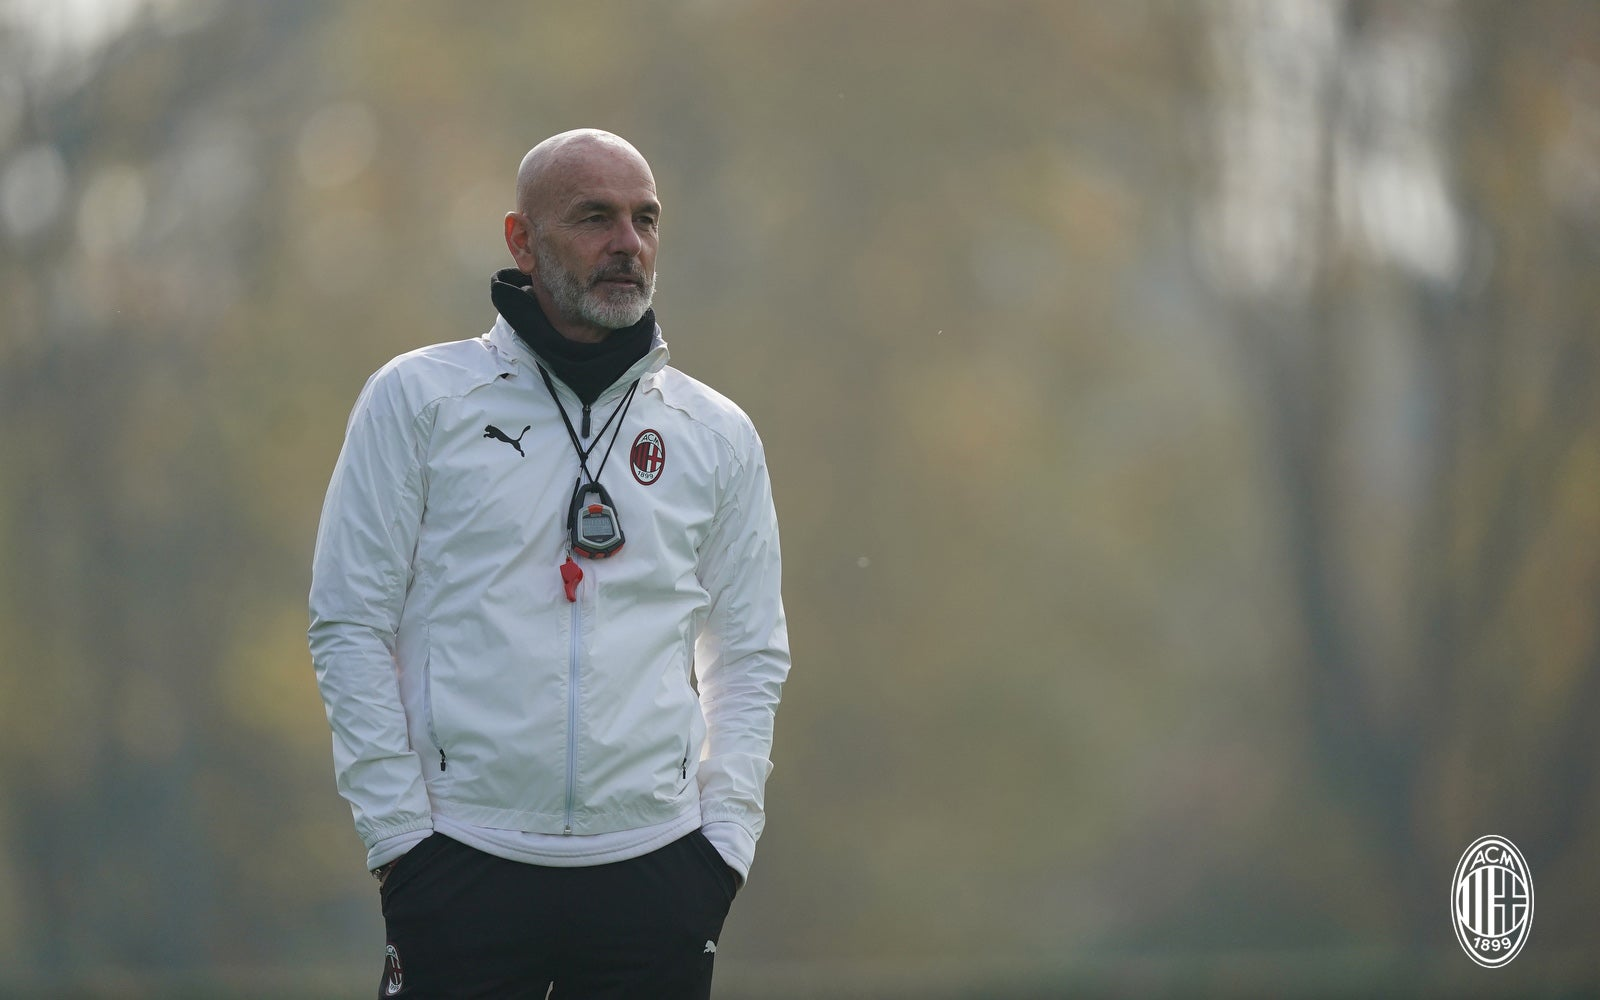 Pioli Wins Gazzetta Dello Sport S 2020 Coach Of The Year Award We Want To Bring Milan Where We Deserve To Be Rossoneri Blog Ac Milan News